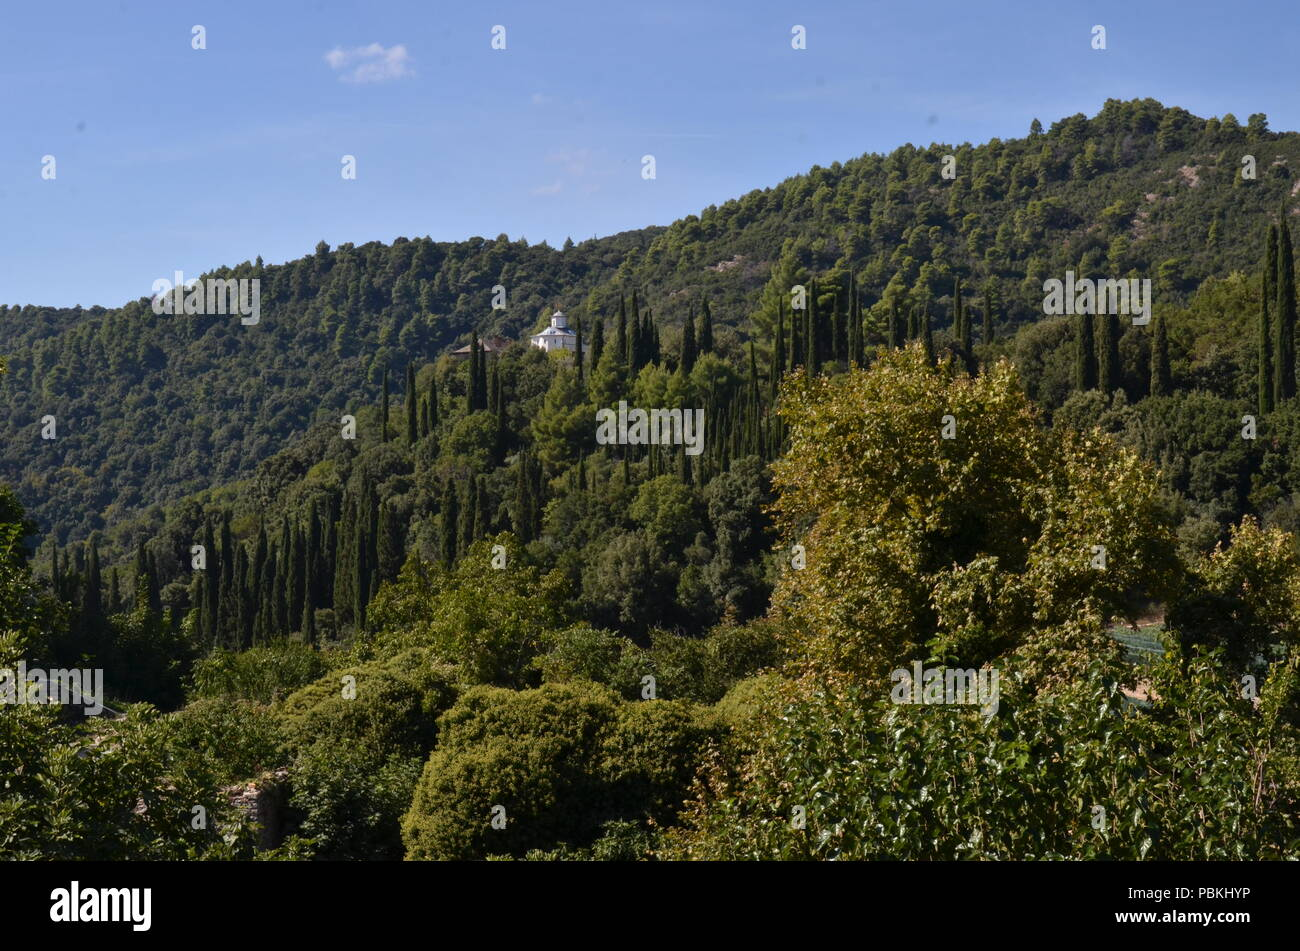 Coniferous forest in a sunny day in Greece - Stock Image